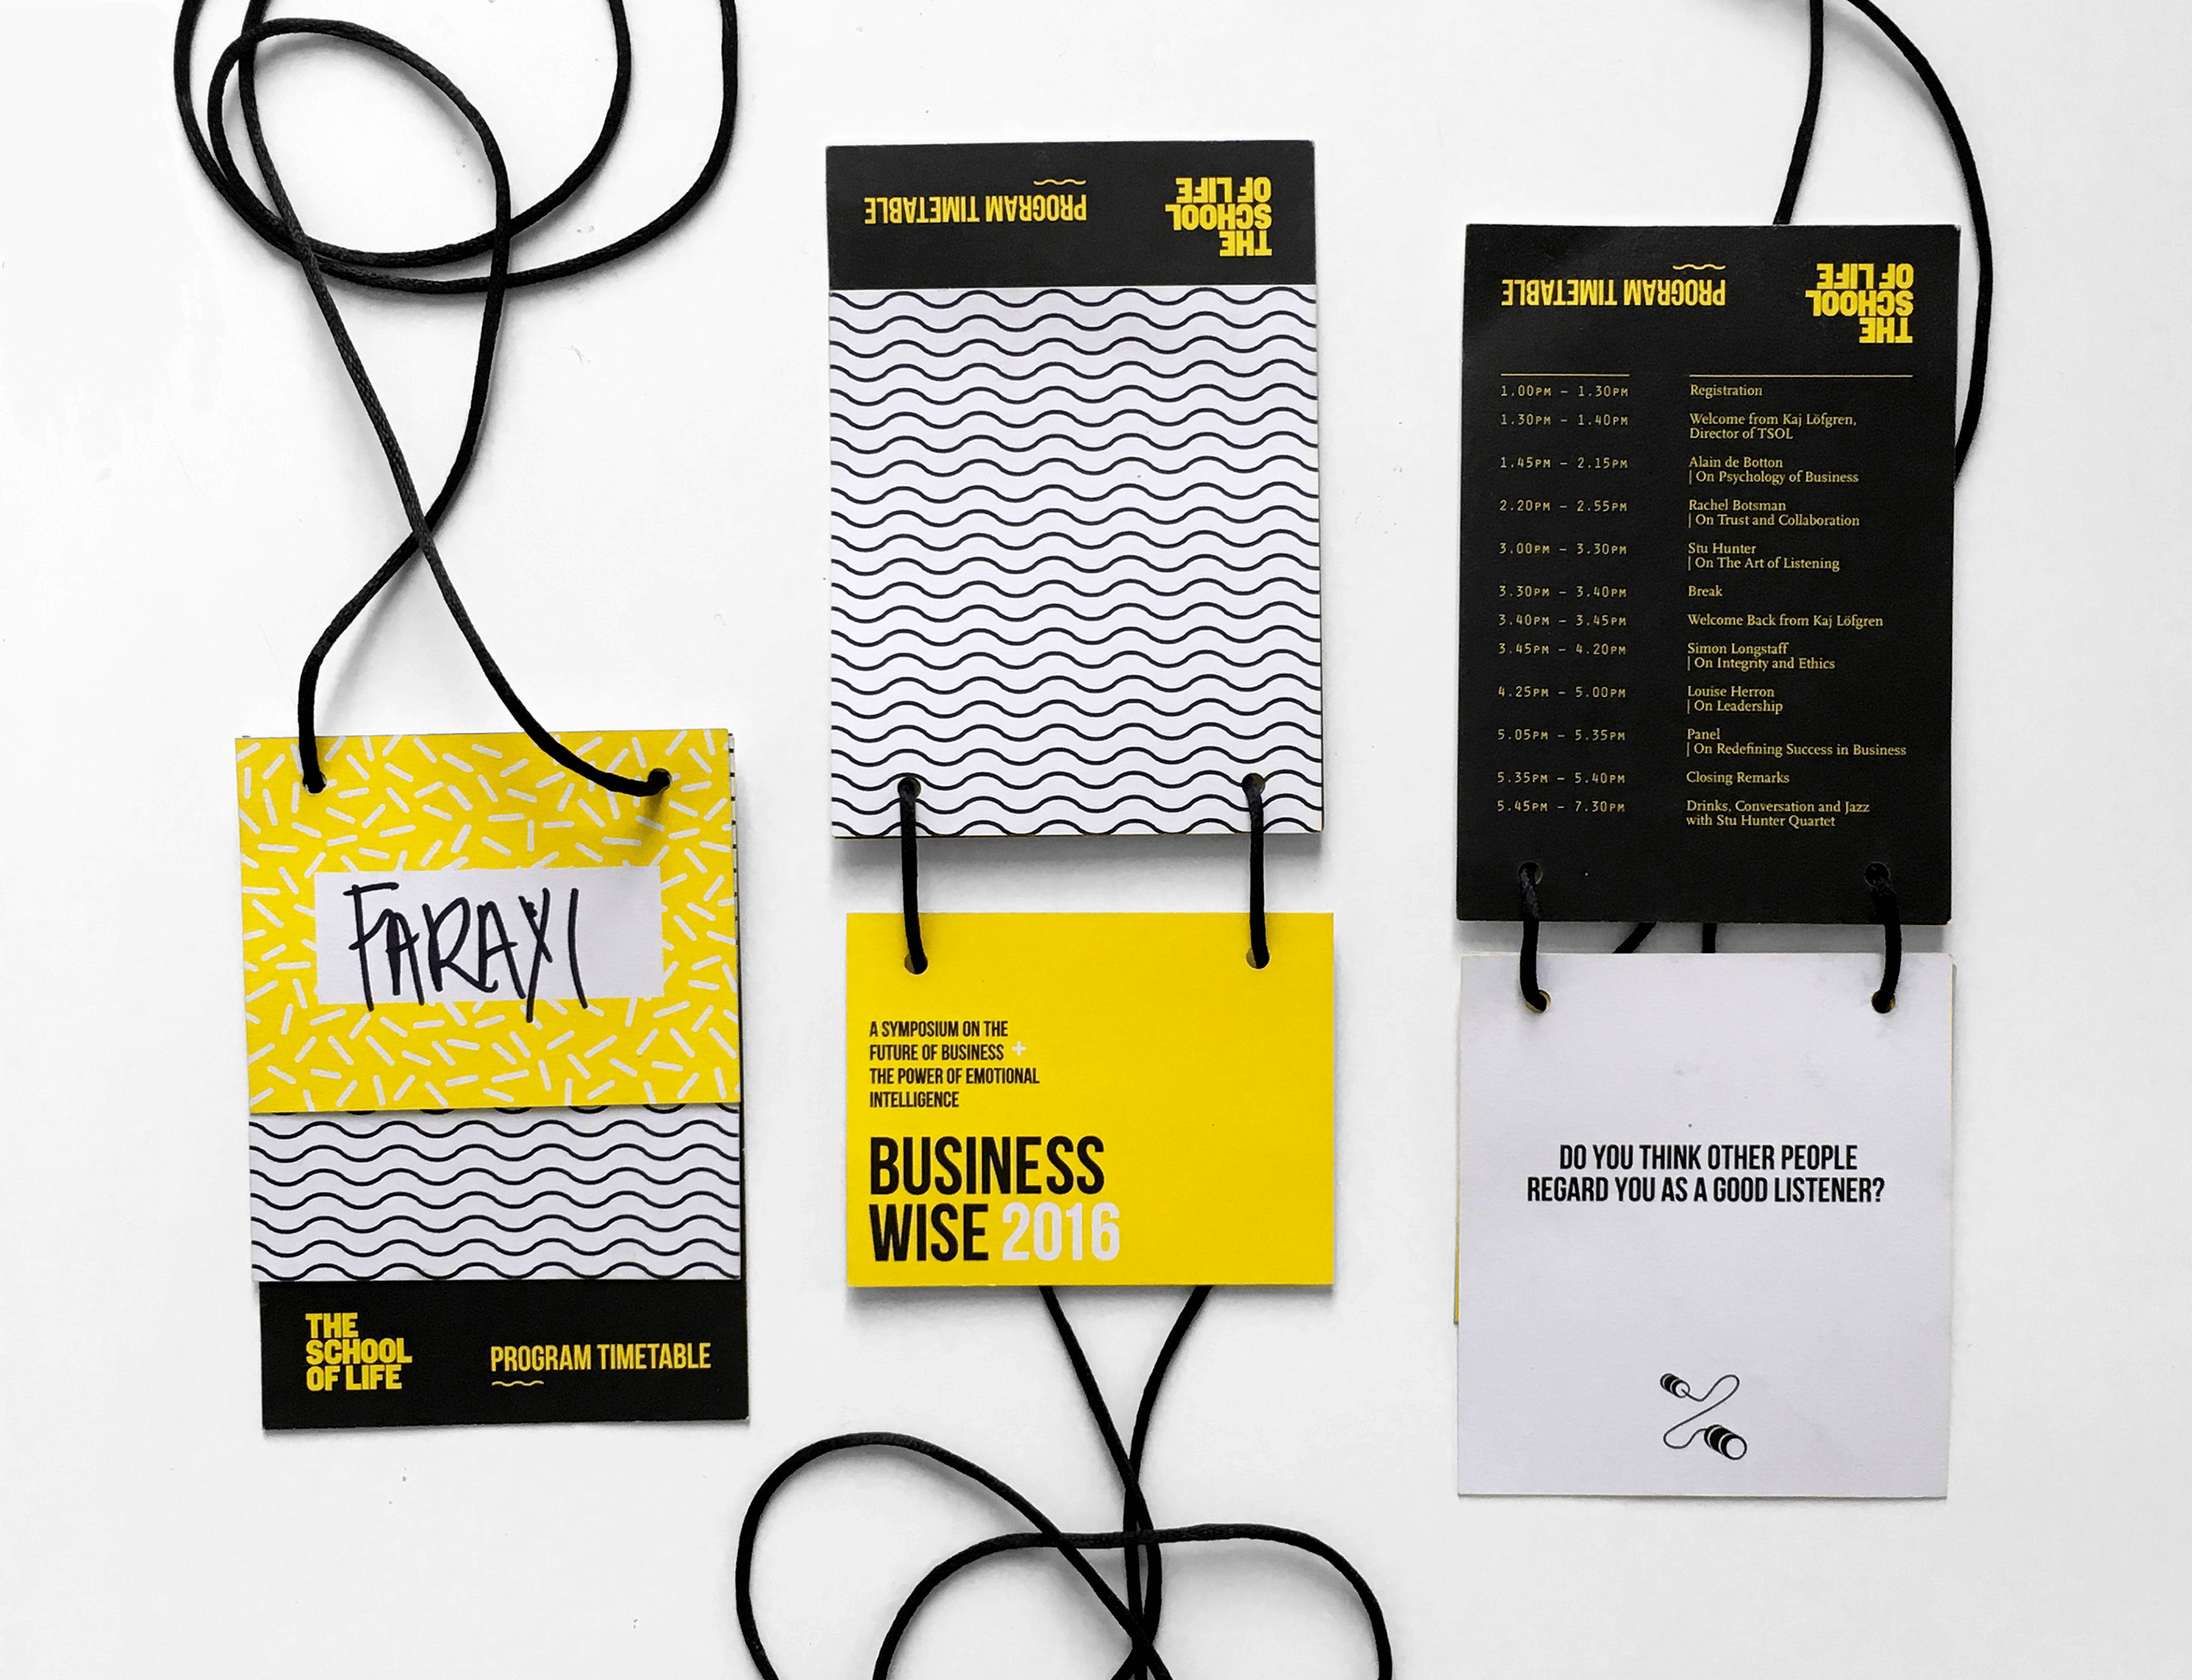 Graphic design of the lanyards for Business Wise conference